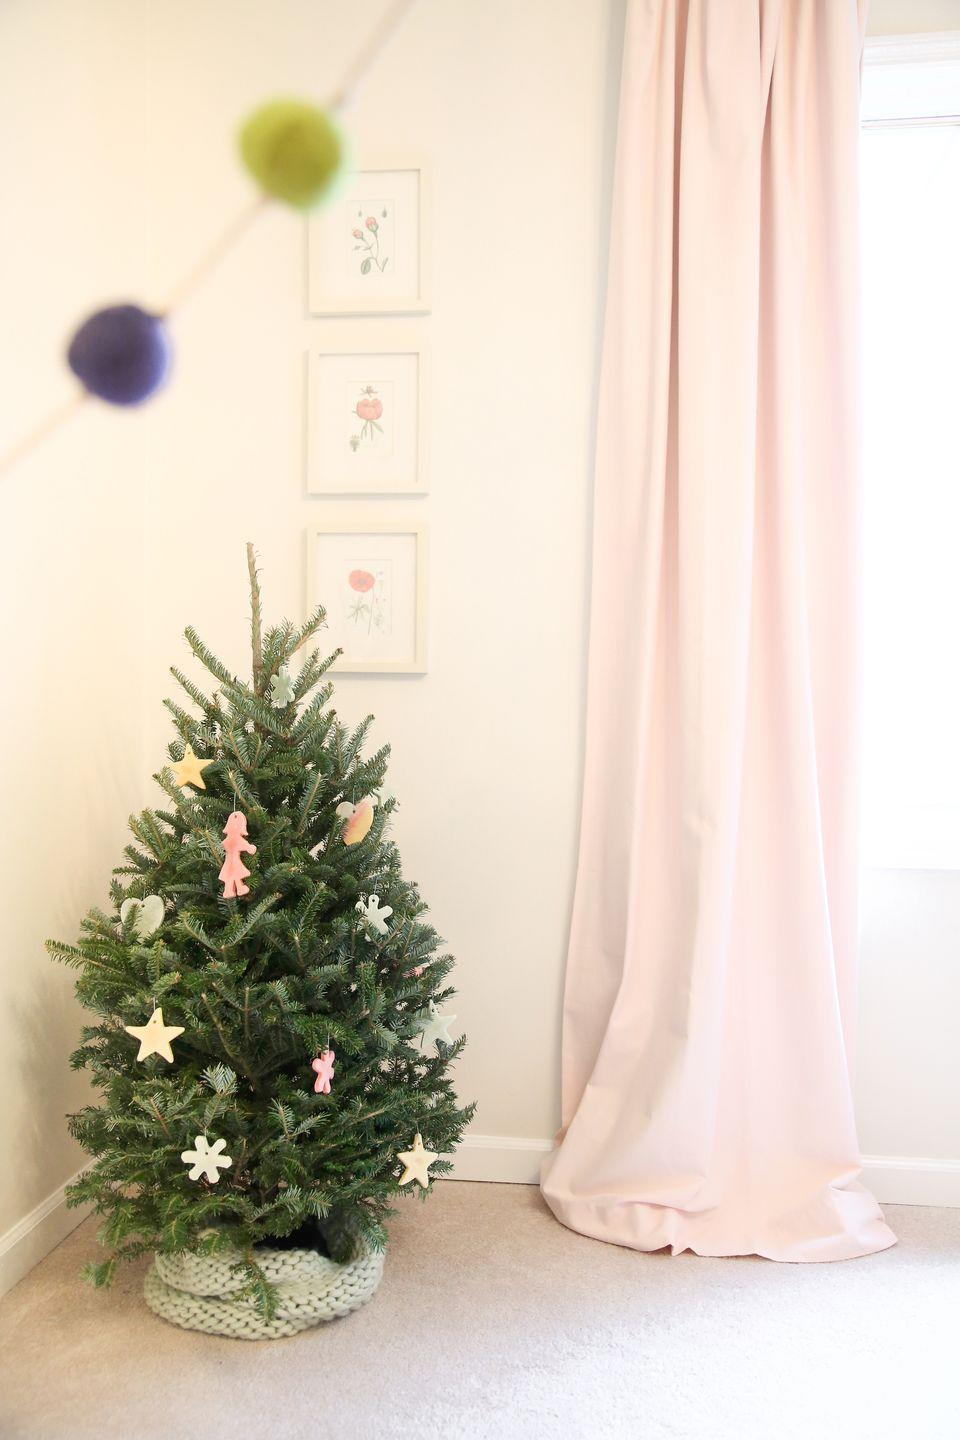 "<p>A personal tree will get your little one more excited than a kid on, well, Christmas morning. This minimally adorned Christmas tree by <a href=""http://julieblanner.com/christmas-decorations/"" rel=""nofollow noopener"" target=""_blank"" data-ylk=""slk:Julie Blanner"" class=""link rapid-noclick-resp"">Julie Blanner</a> adds a little touch of charm to a daughter's room but is likely to bring a big smile to anyone awaiting Santa this season. </p>"